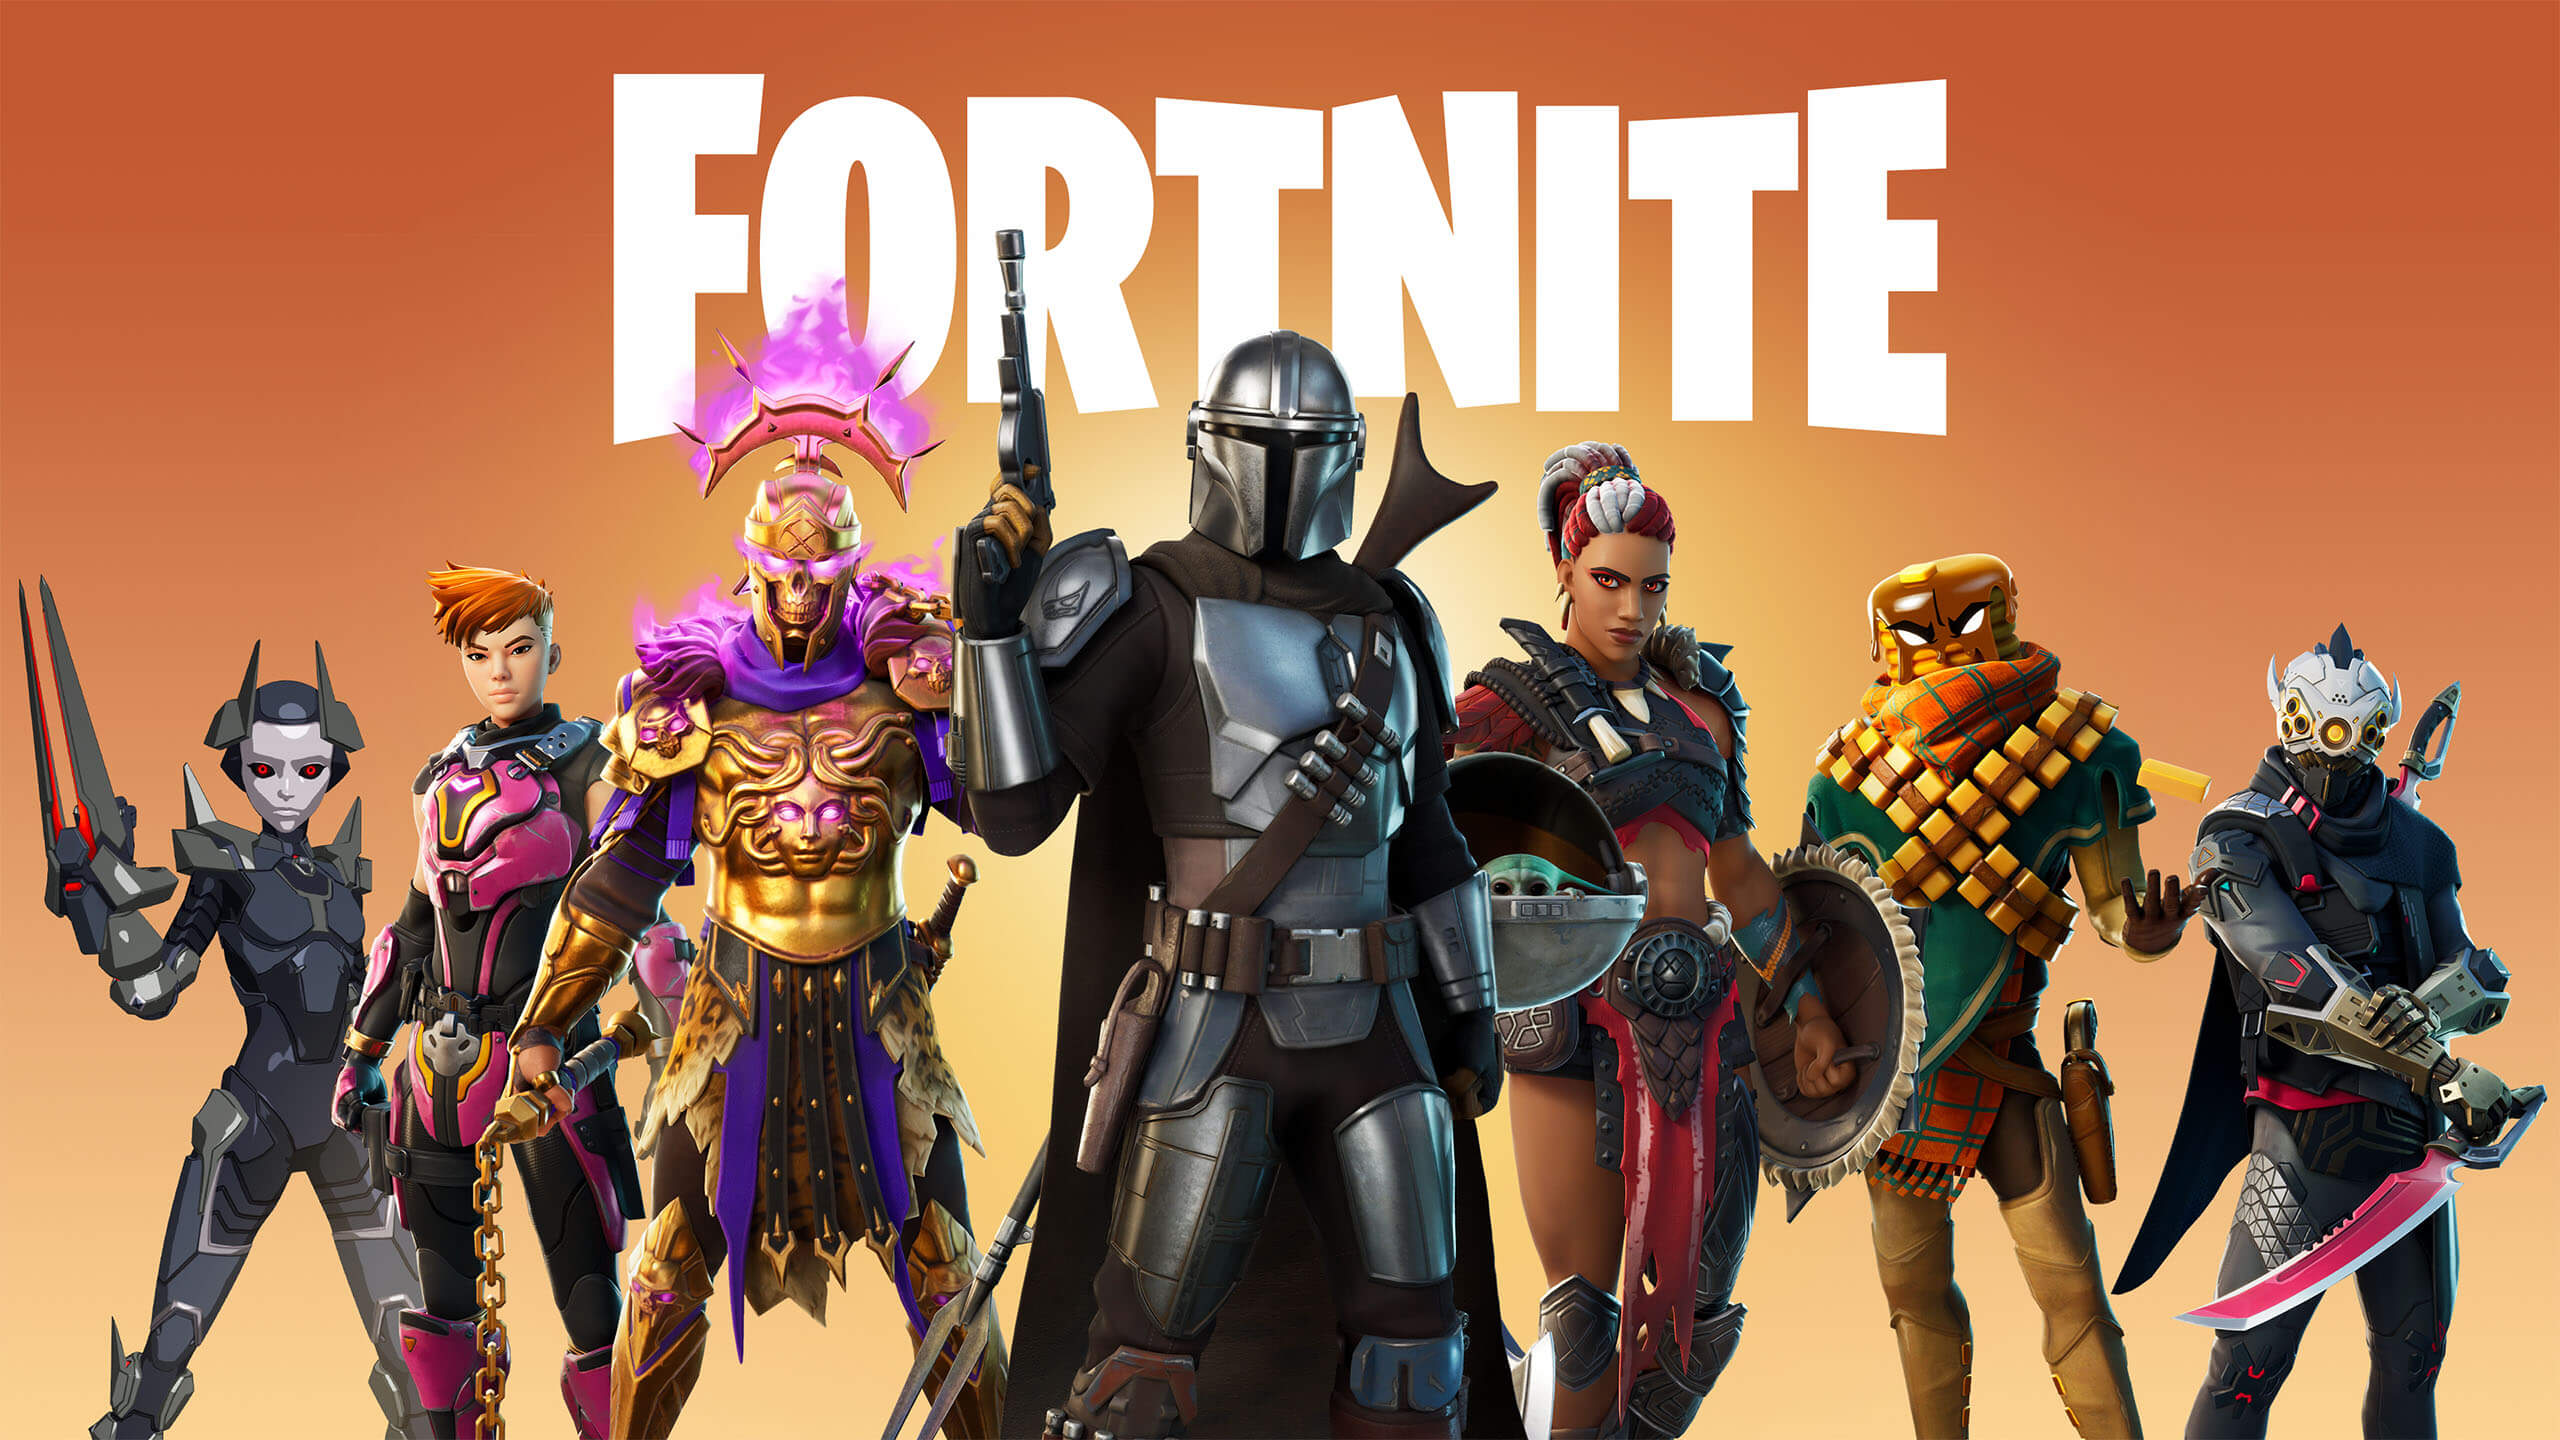 Fortnite Images / For status updates and service issues check out @fortnitestatus.